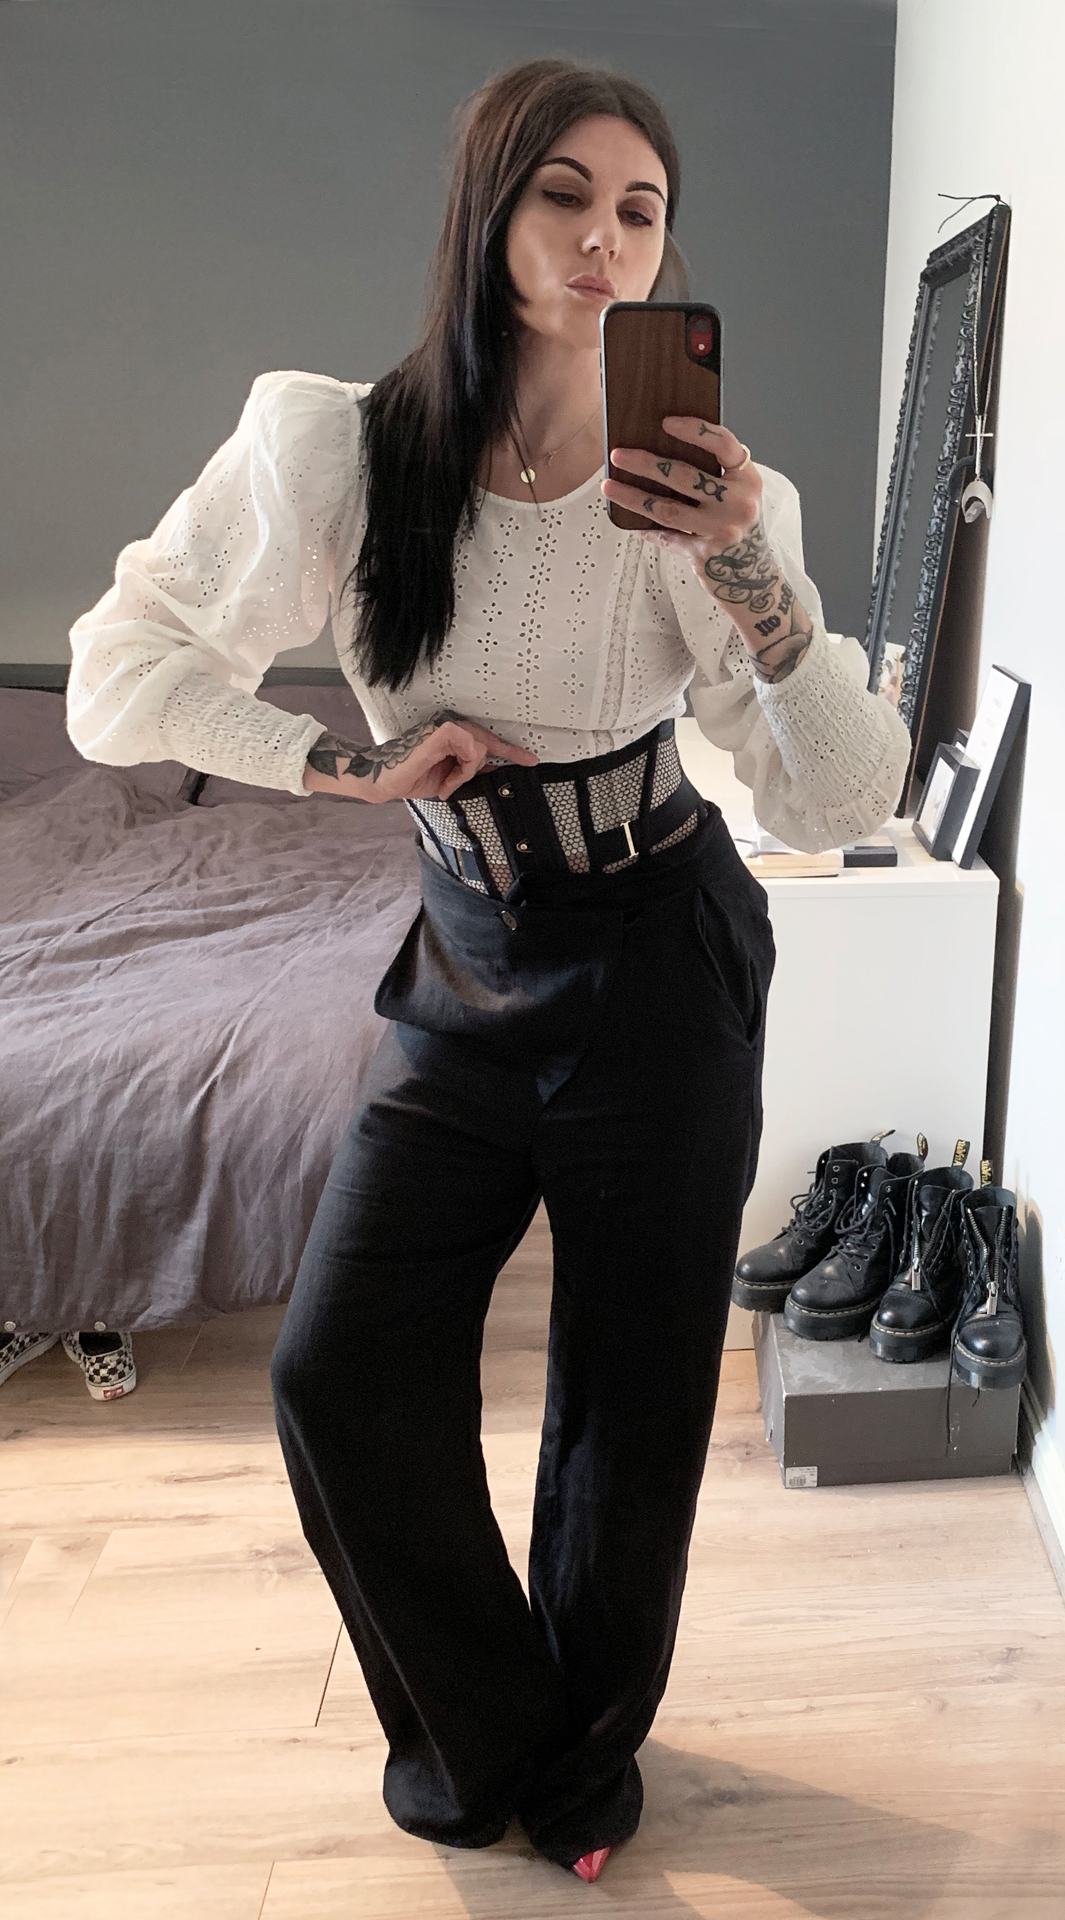 Jean Pierre Braganza trousers / Honey Birdette Corset belt / Zara top